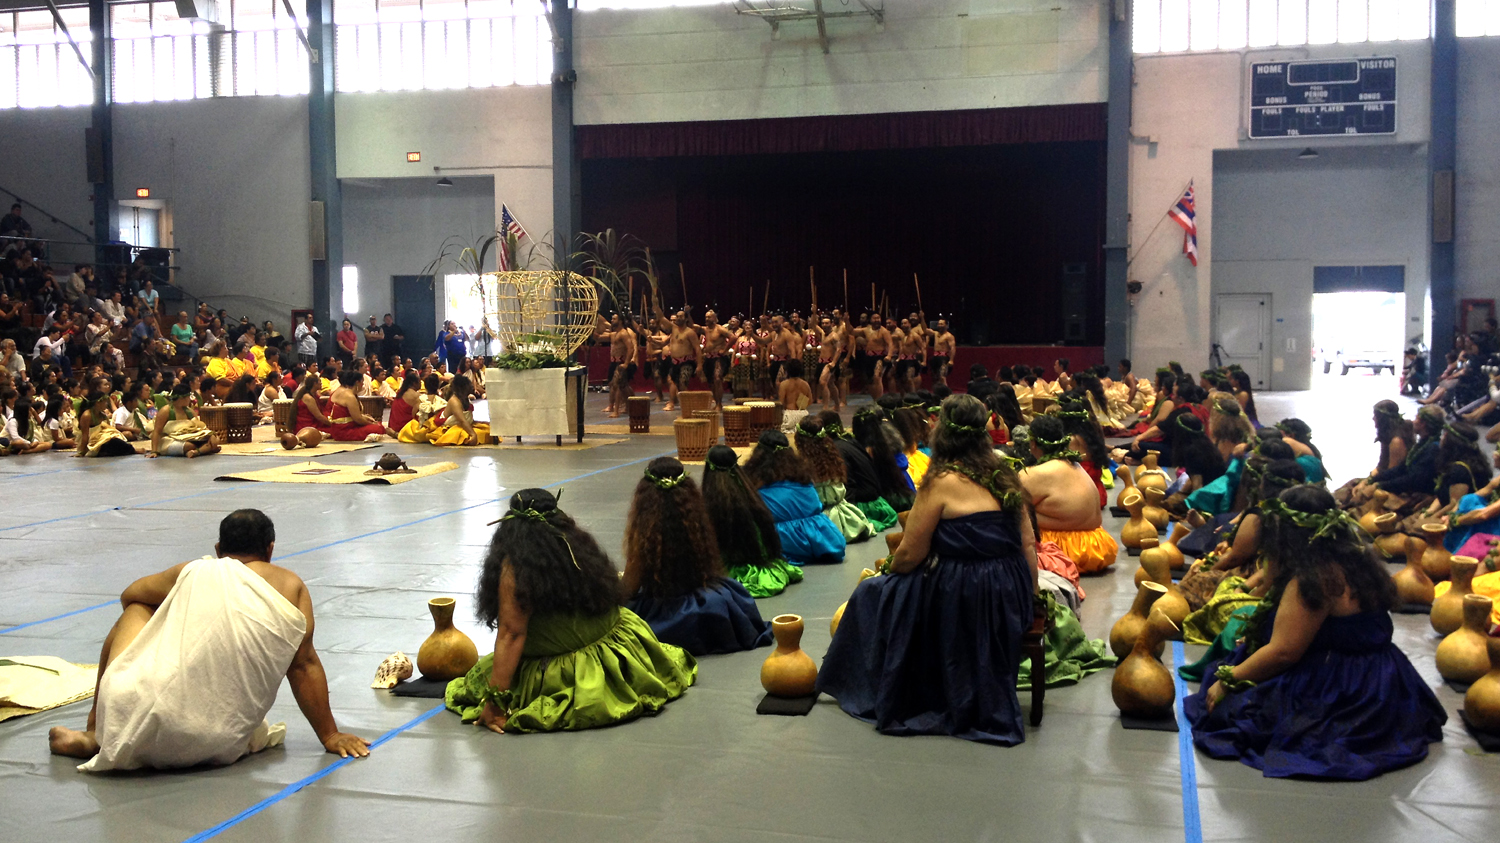 VIDEO: 2014 Merrie Monarch Festival begins